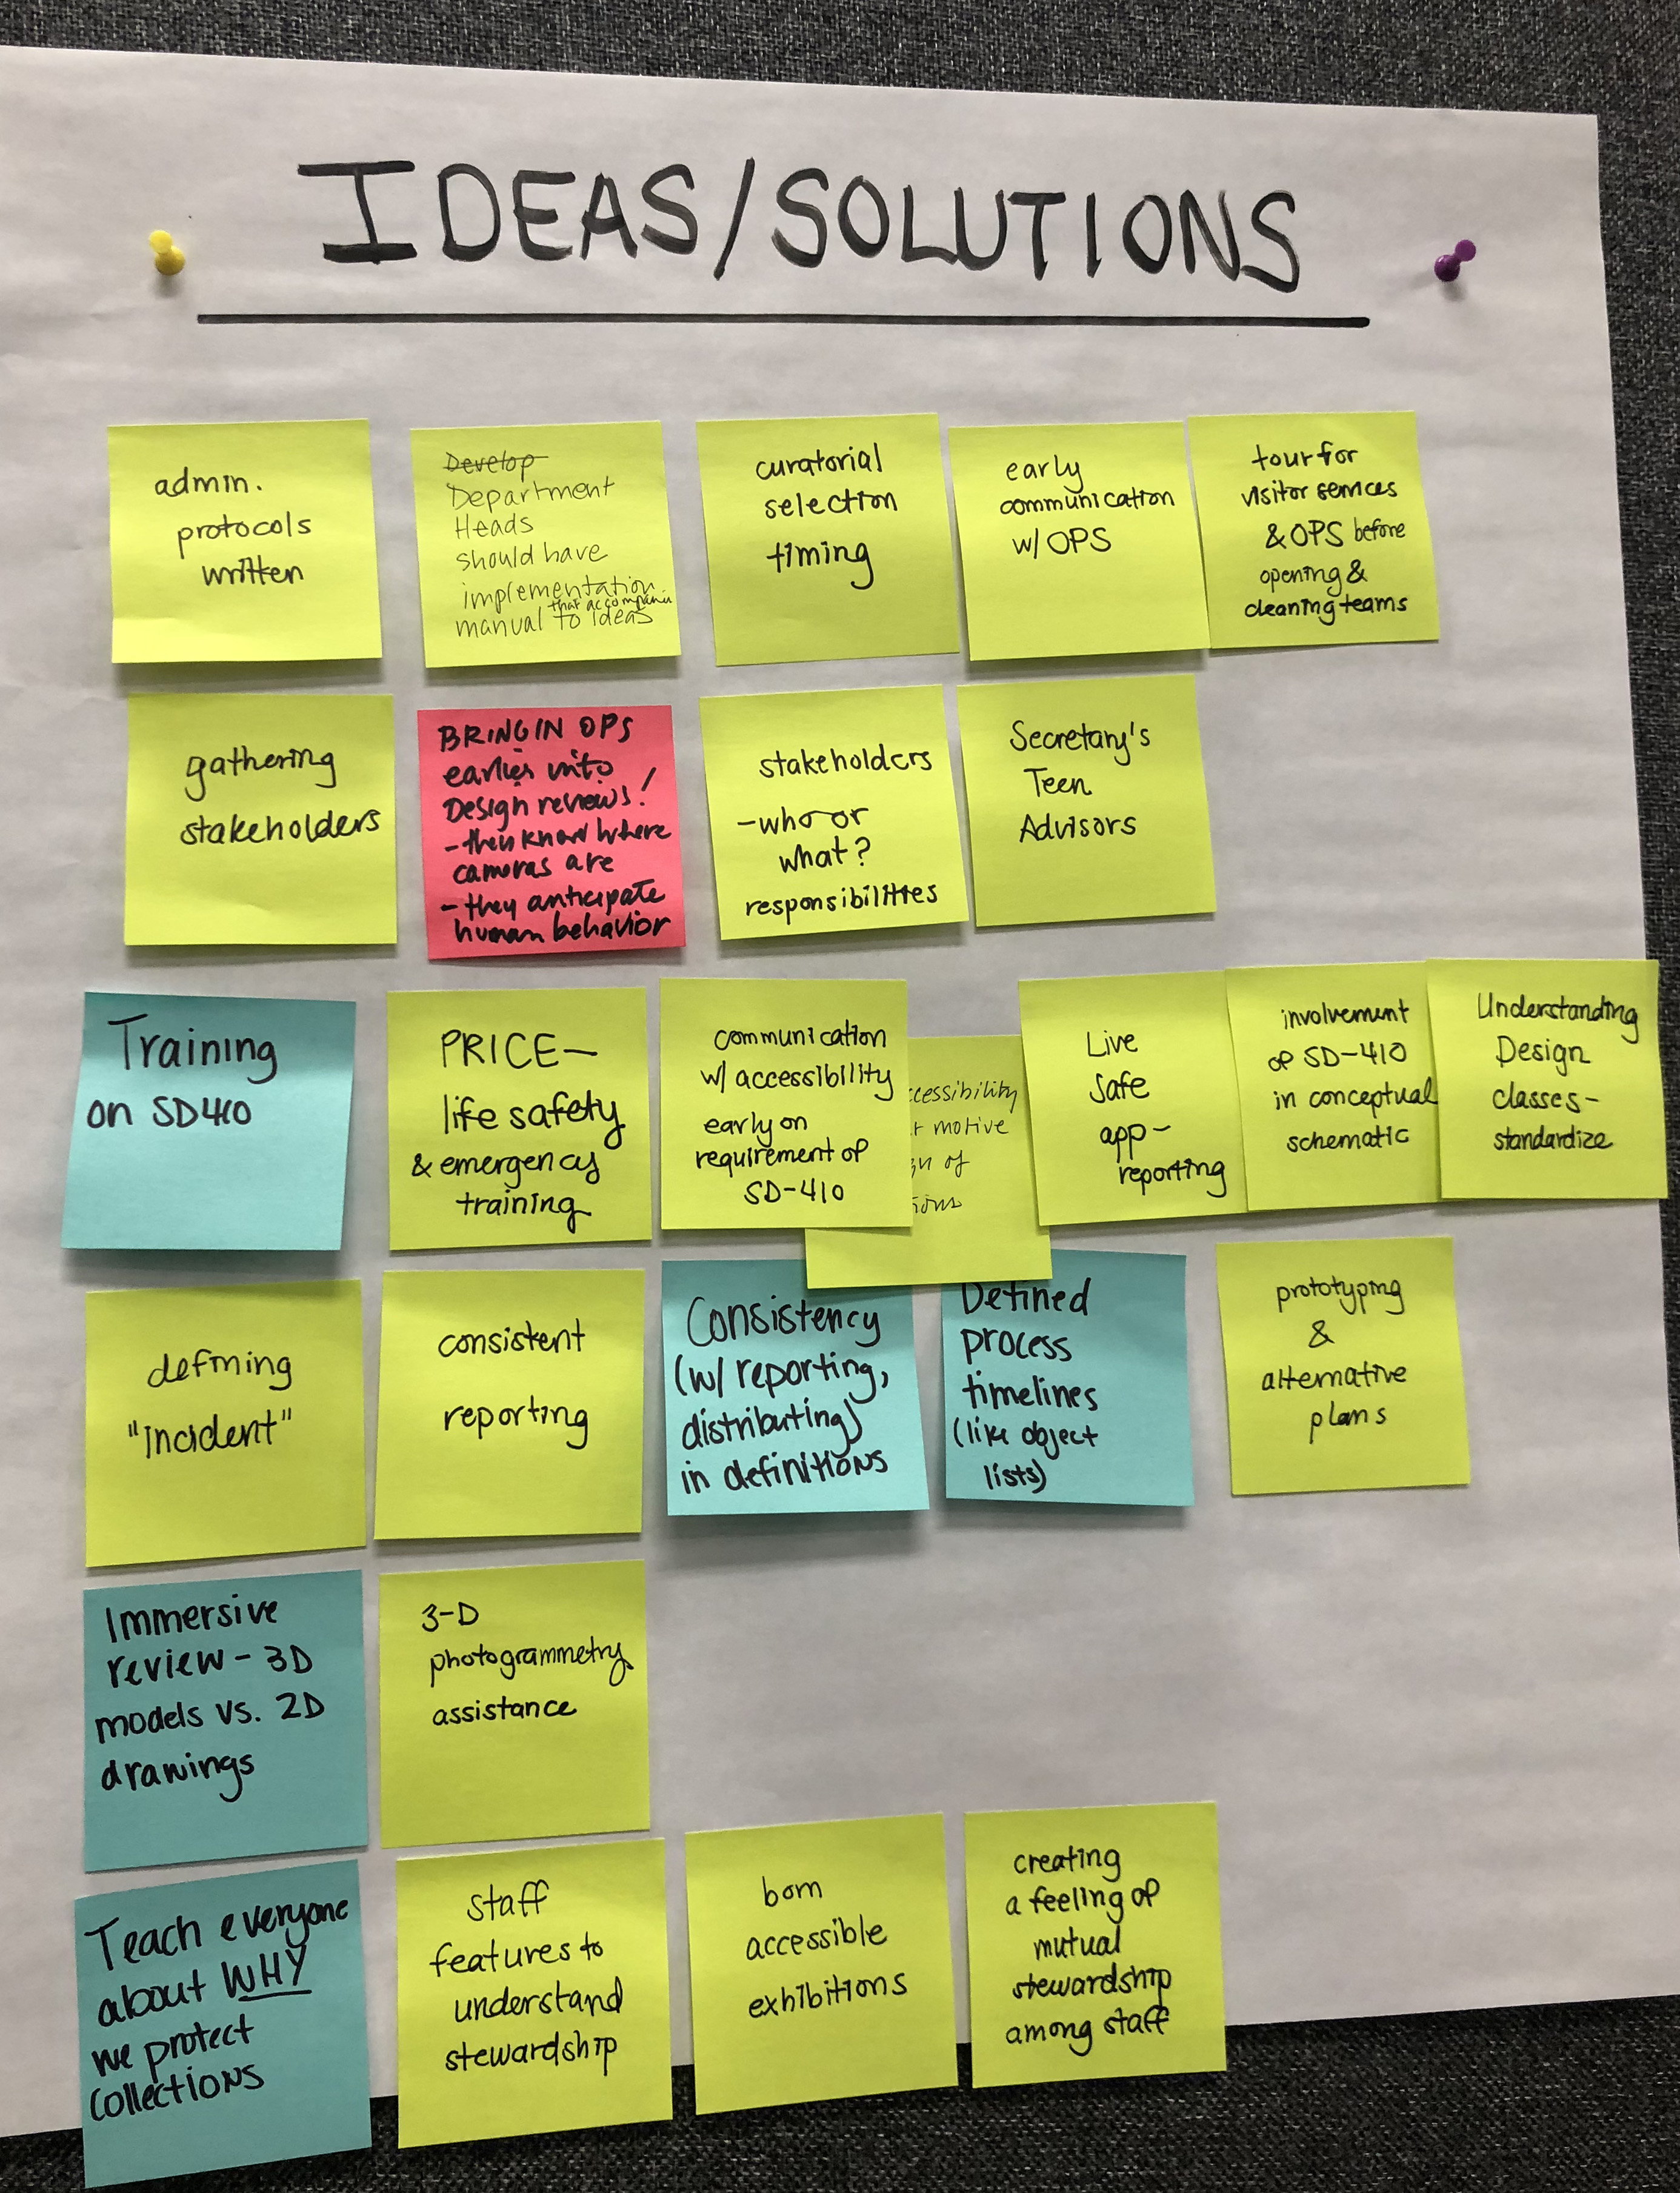 """Figure 1. The """"Ideas and Solutions""""large sheets used to capture datafrom the object safety session during the 2018 C3Conference."""